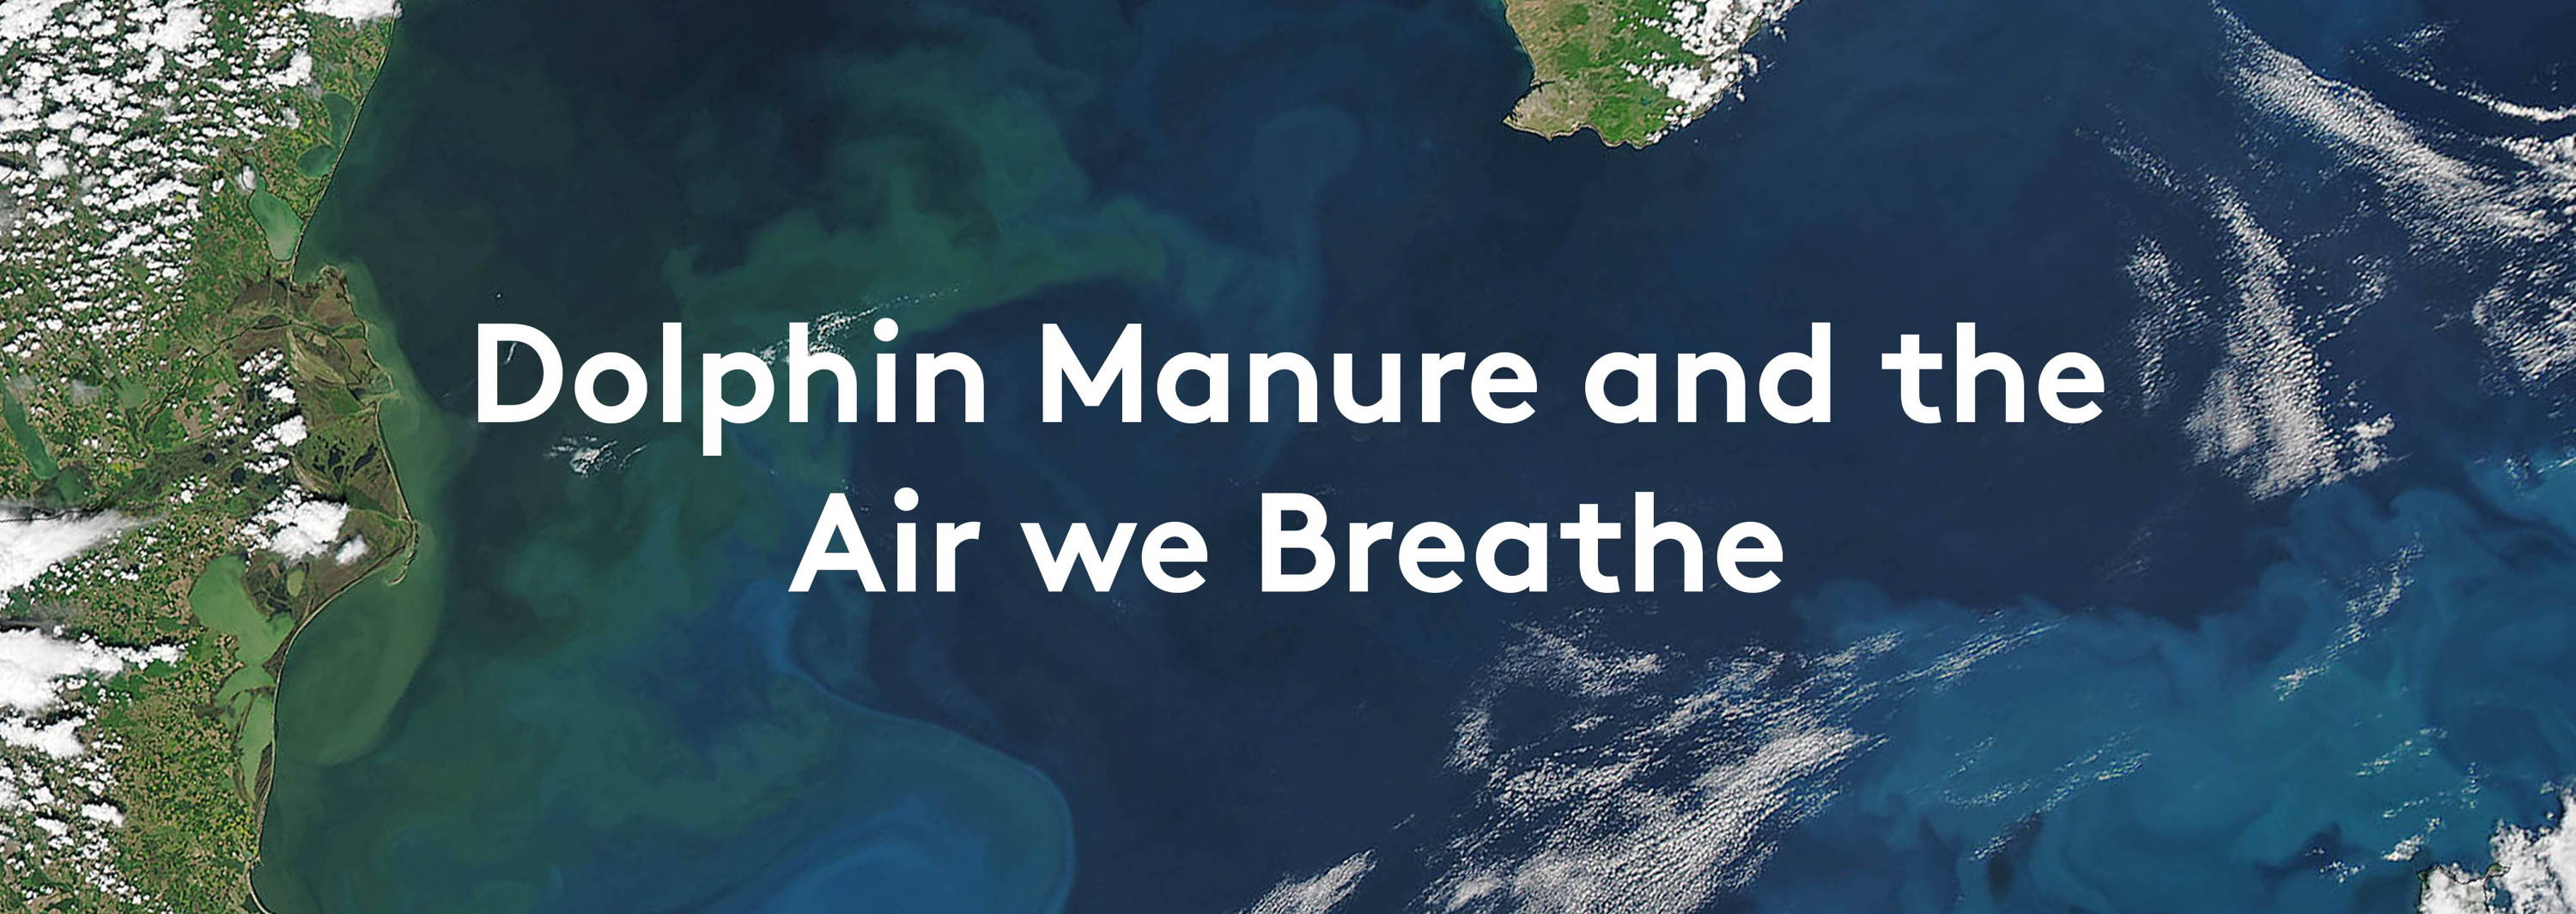 dolphine manure and the air we breathe